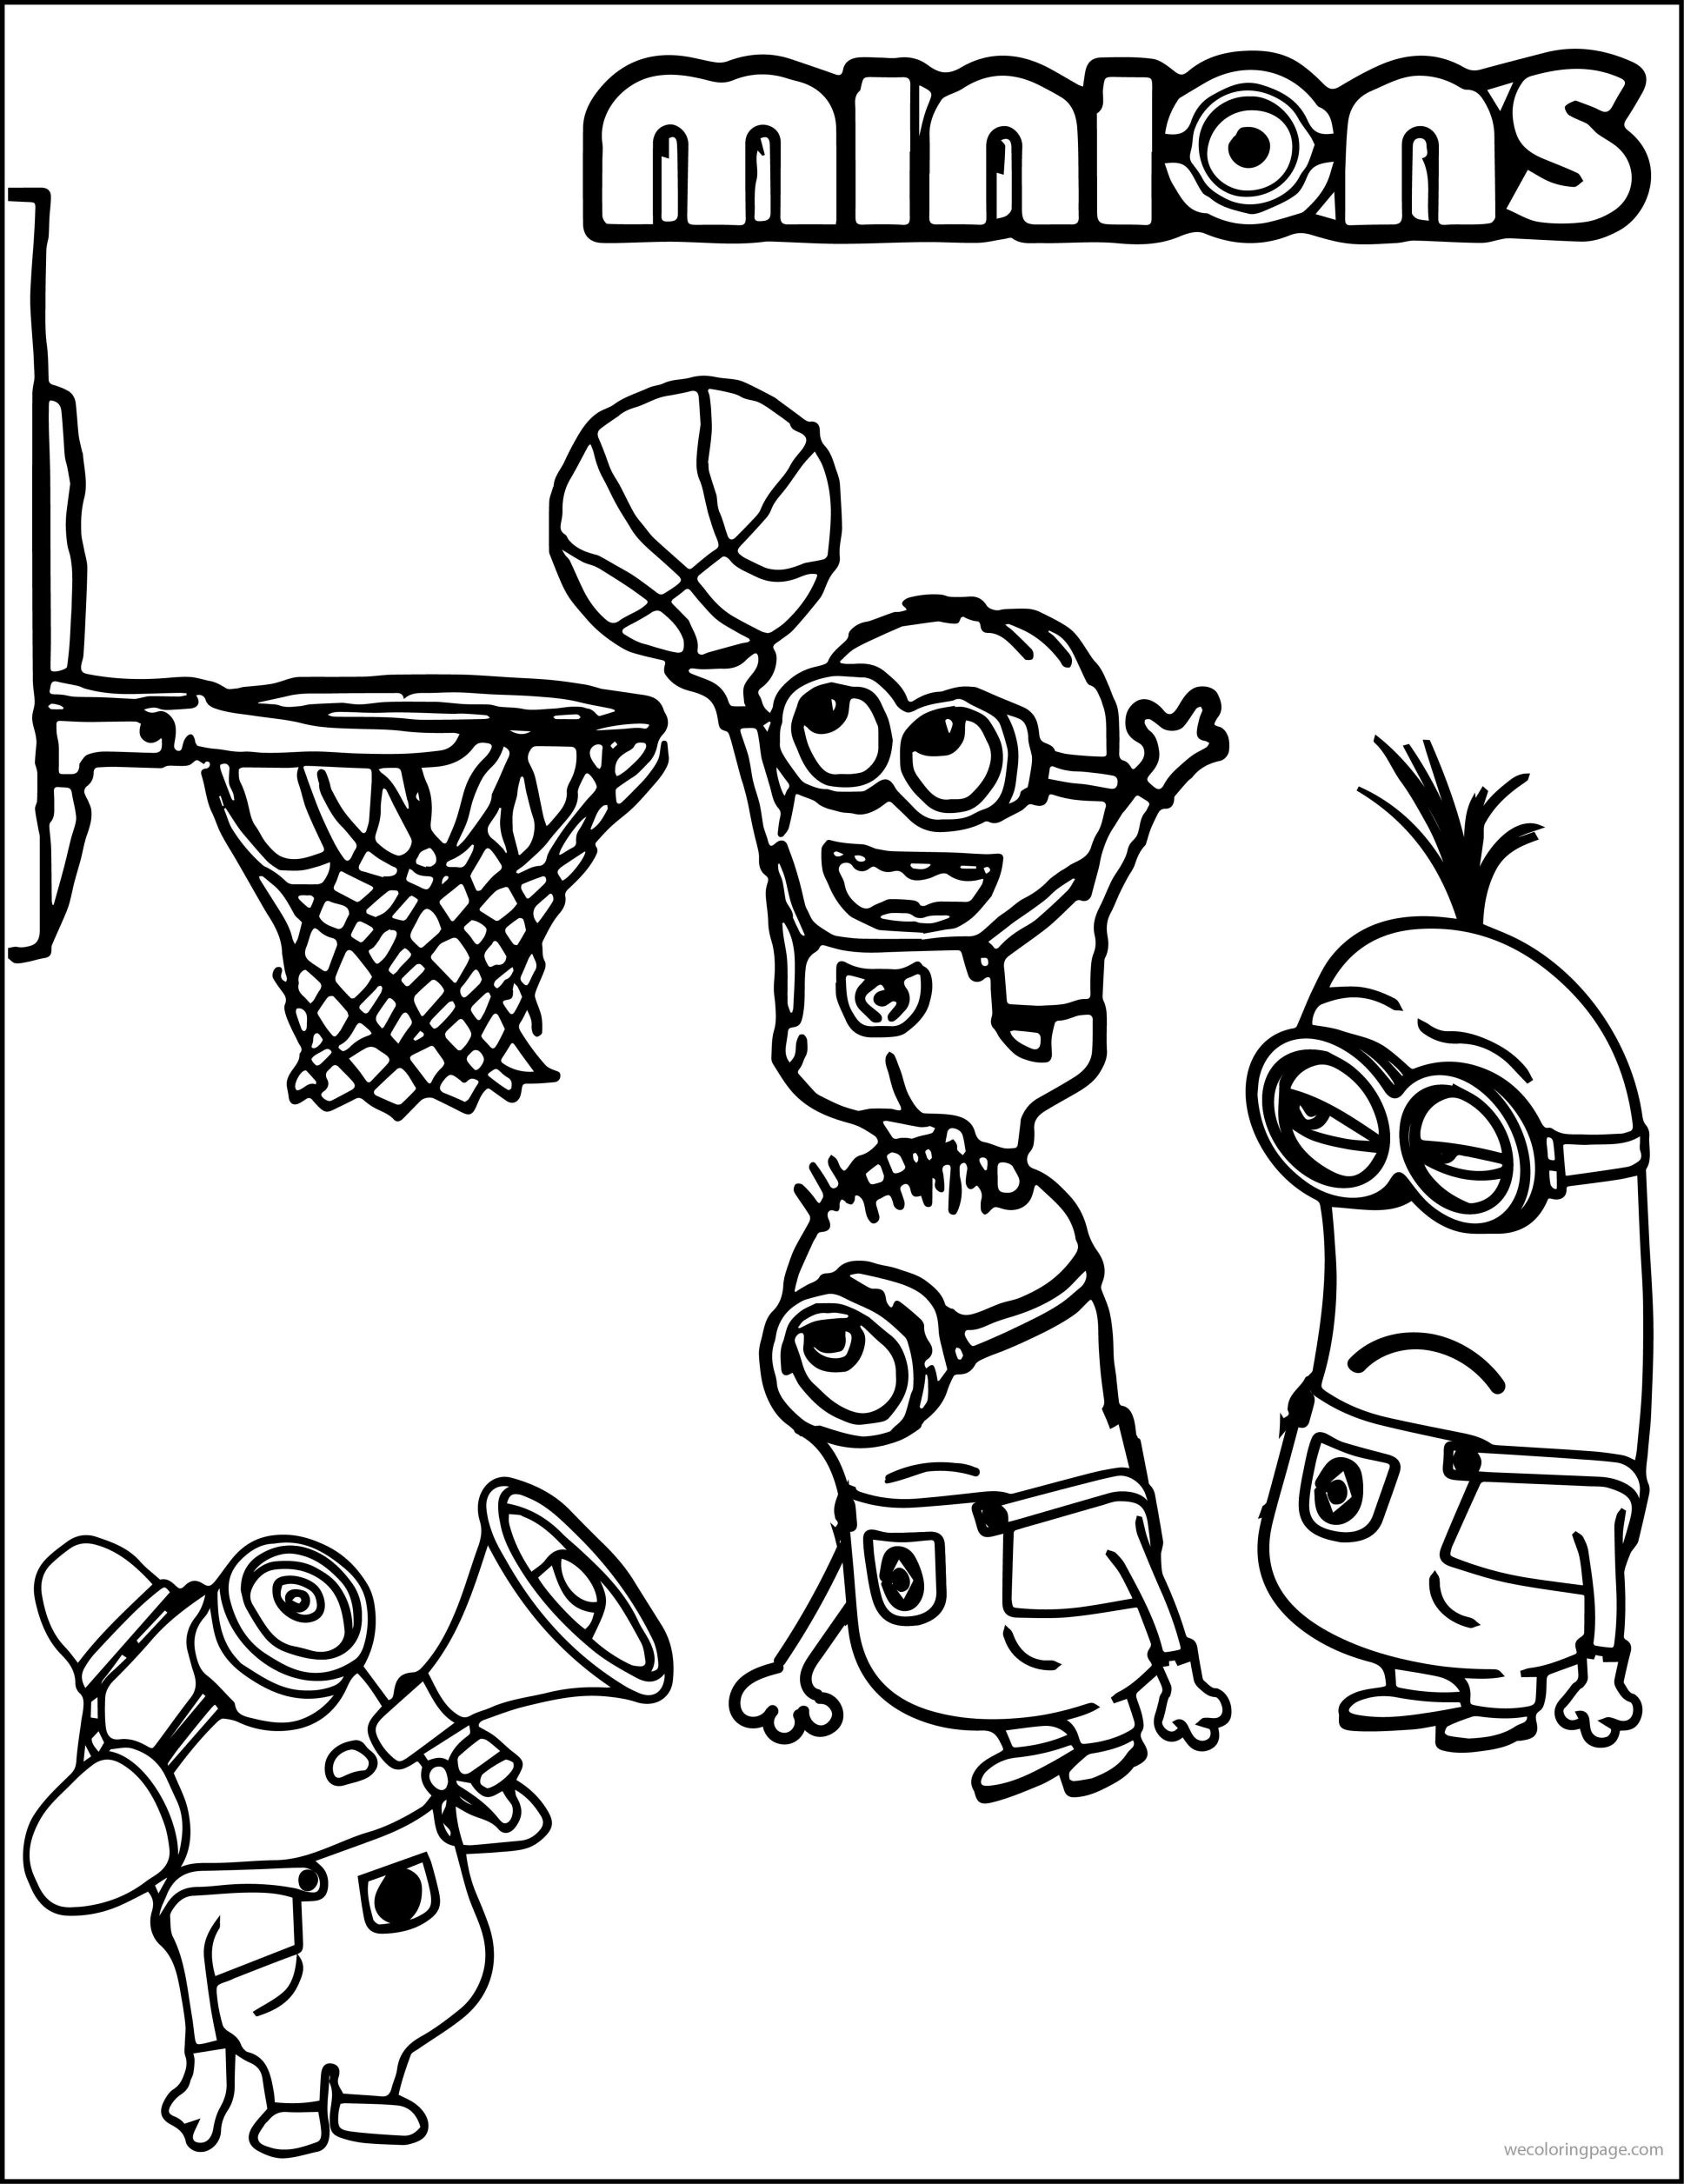 Kobe Bryant Coloring Pages